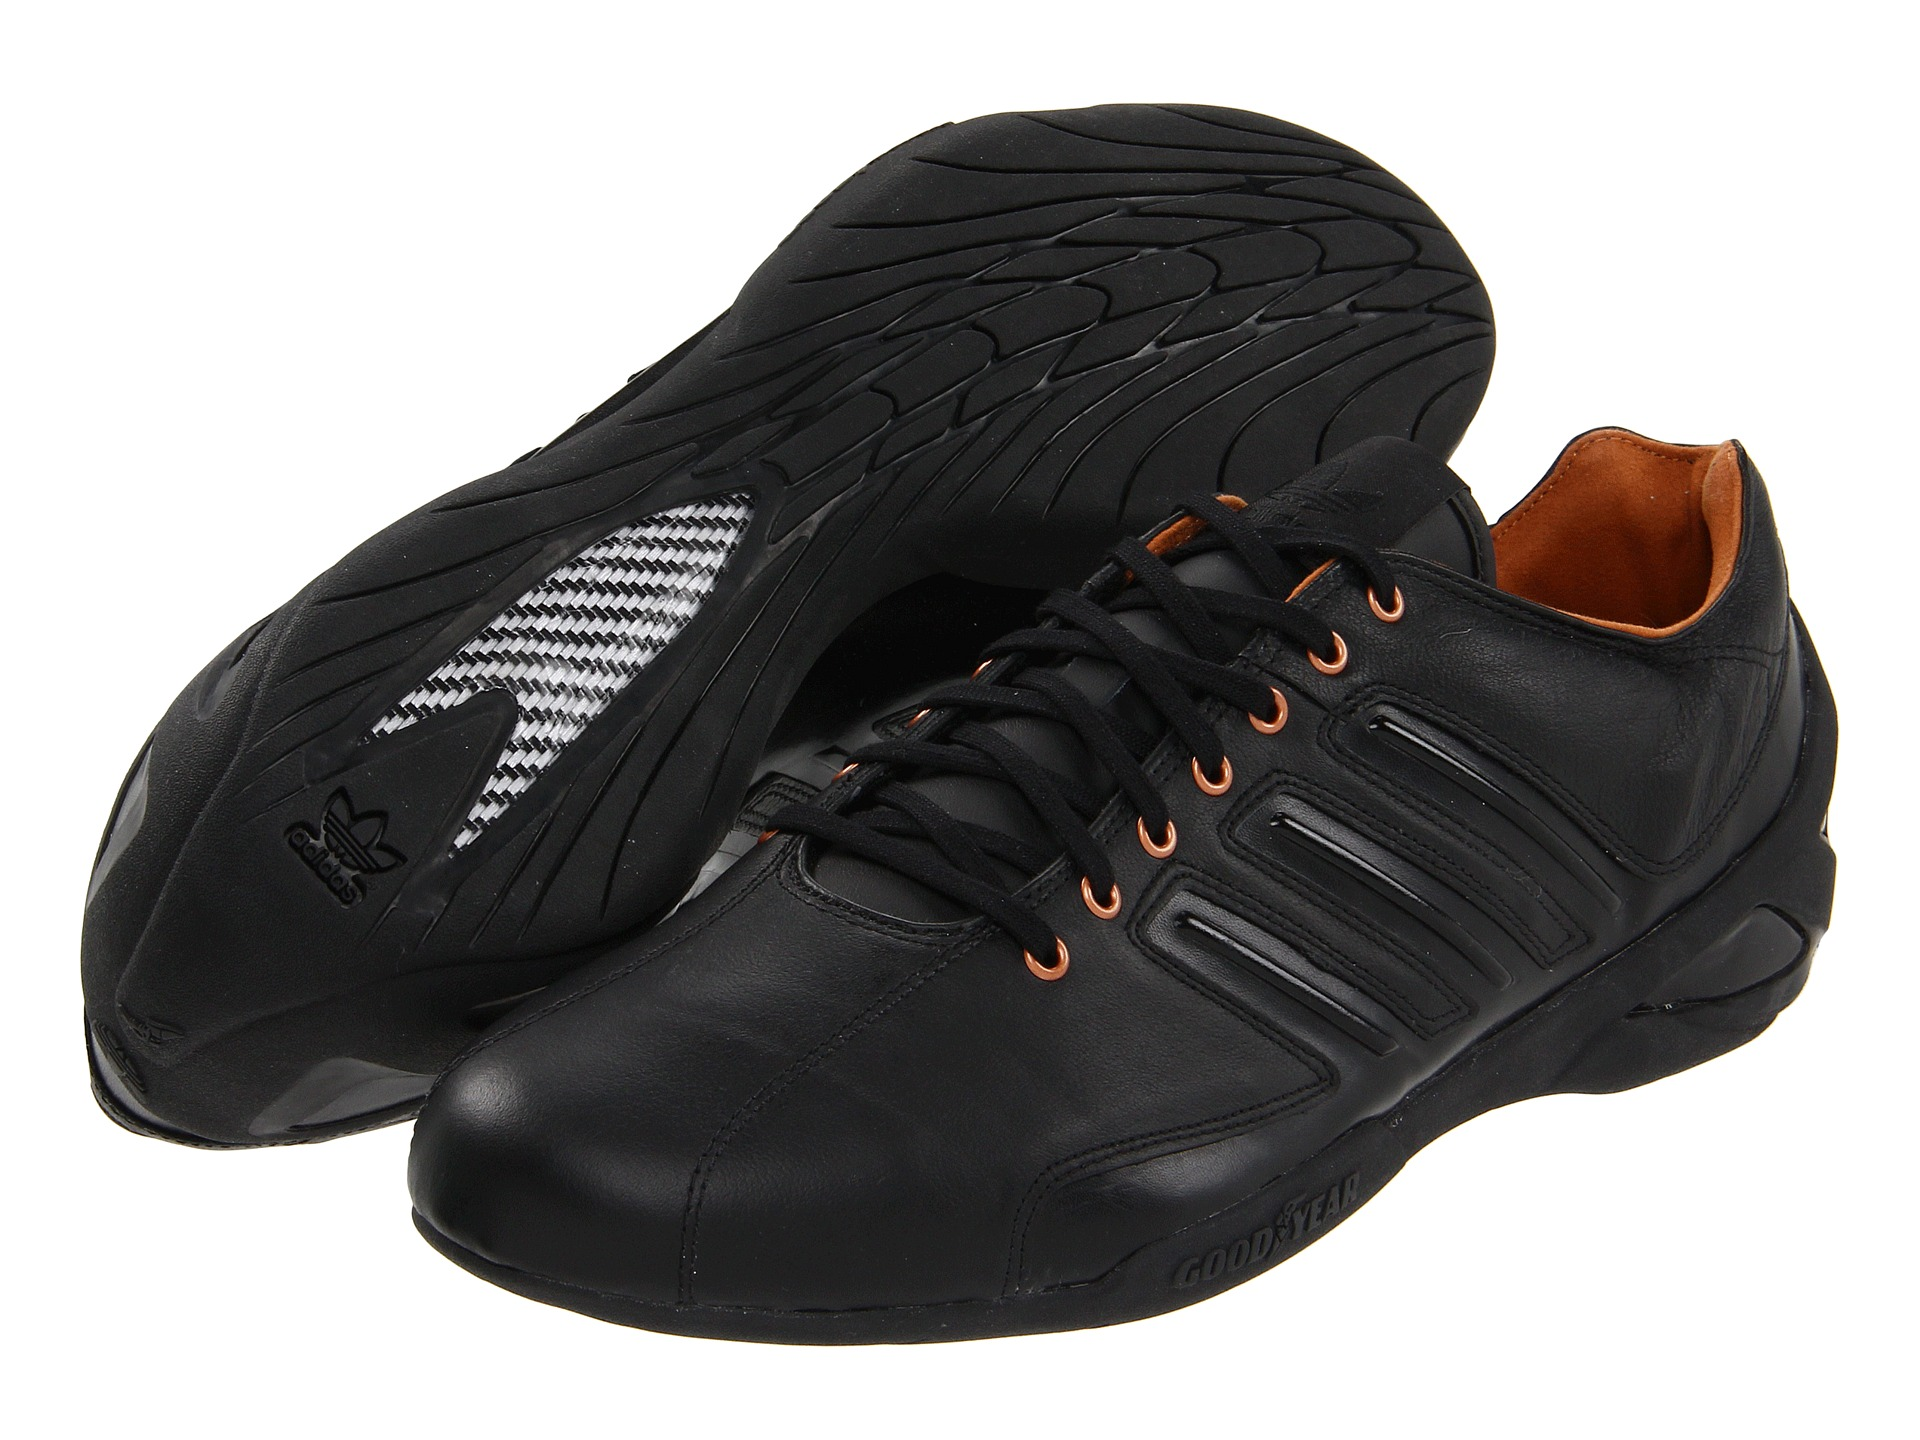 6088be583722 adidas Originals adiRacer Remodel Lo BOTH on PopScreen